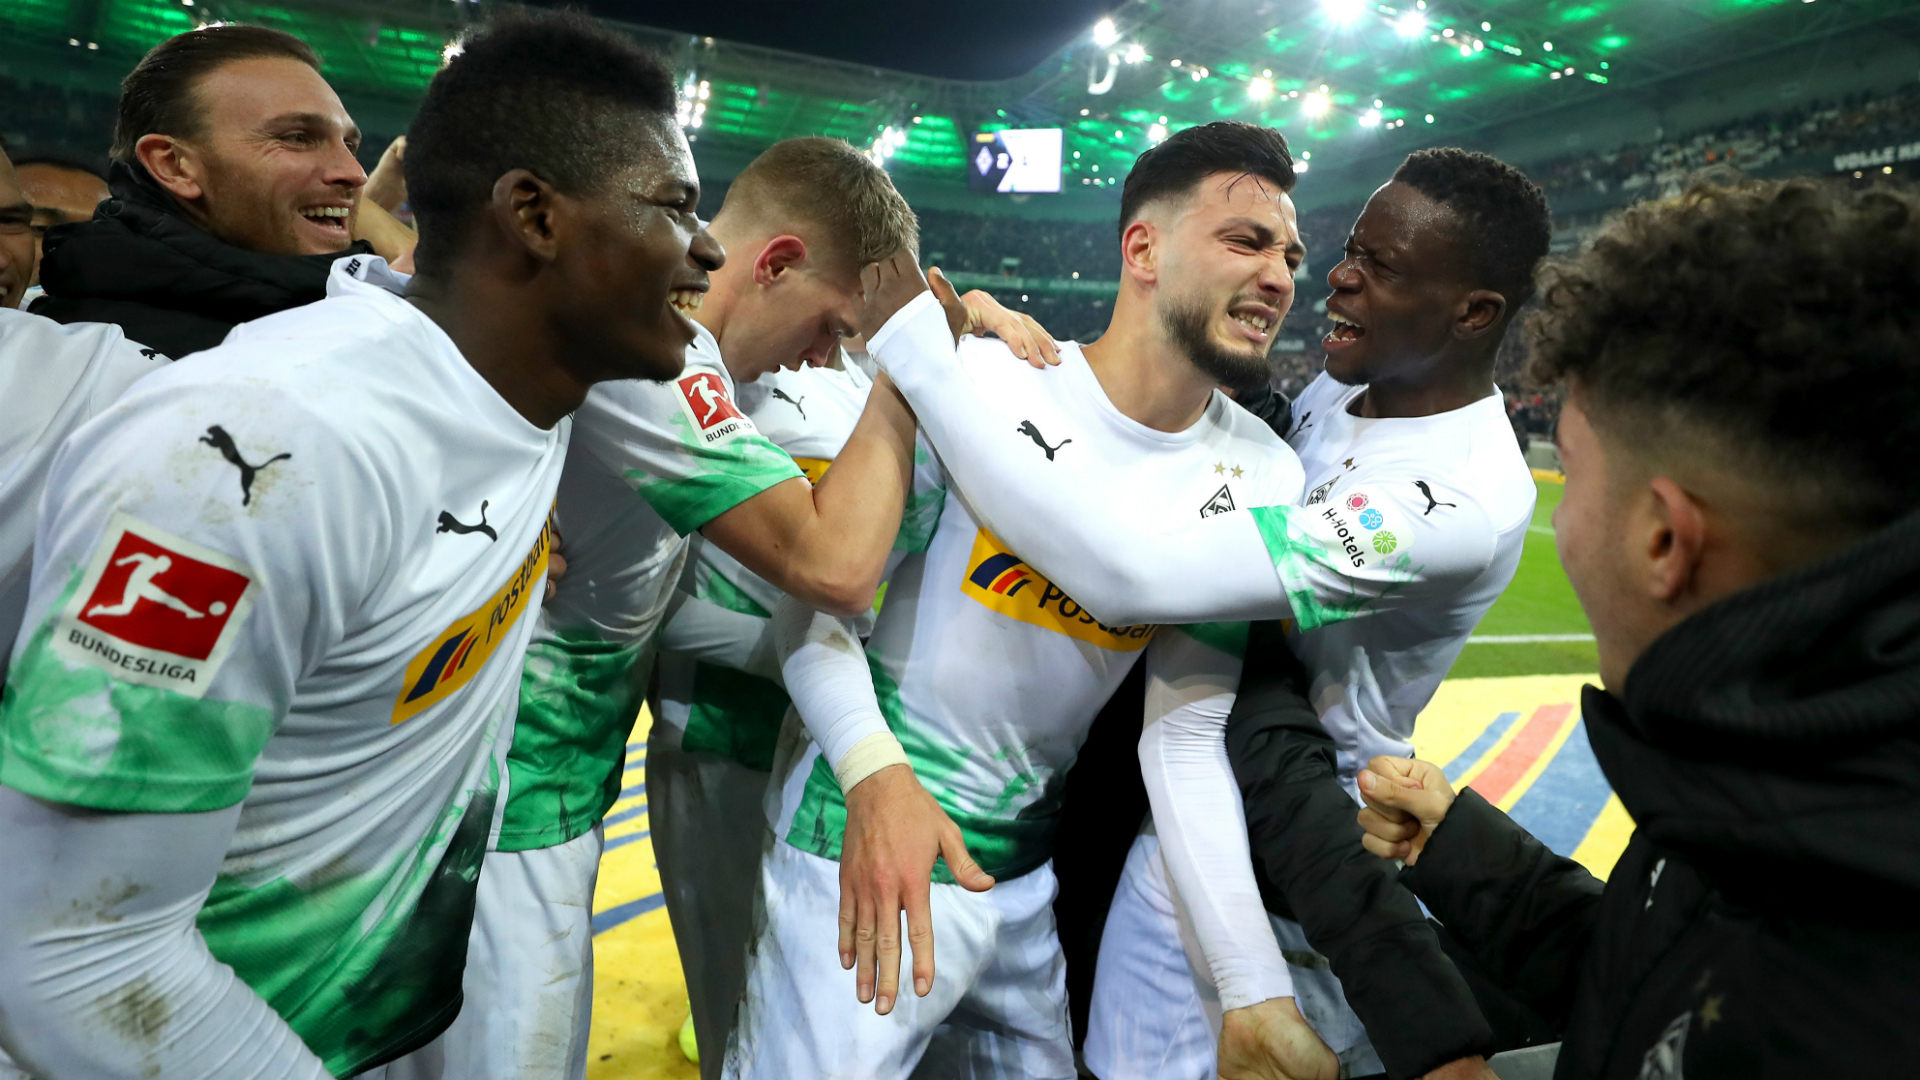 Monchengladbach's Bensebaini provides assist in 4-1 bashing of Ujah's Union Berlin